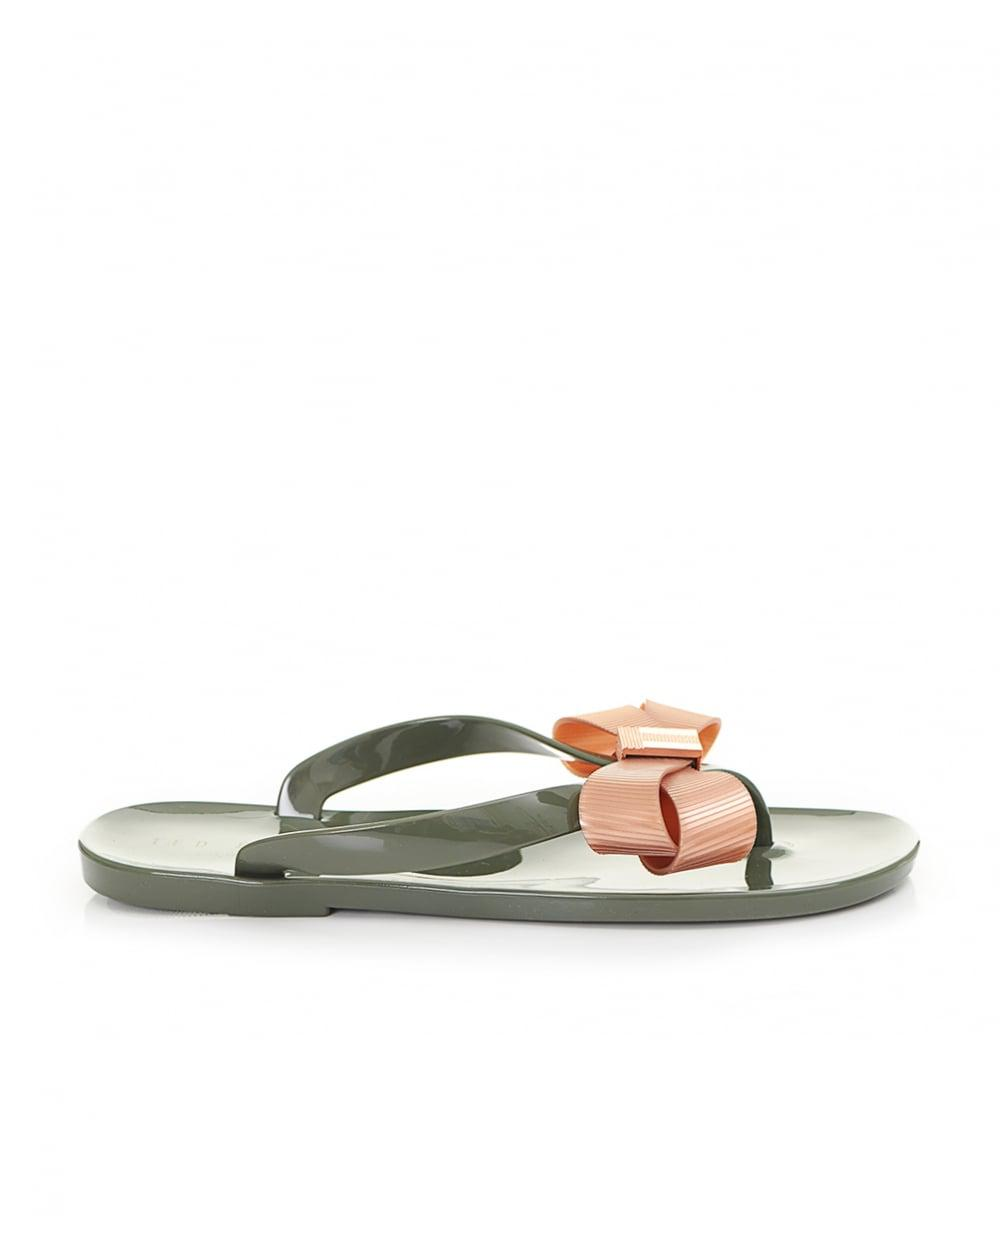 79b2d26d37e9f Ted Baker Bow Front Jelly Flip Flops in Green - Lyst